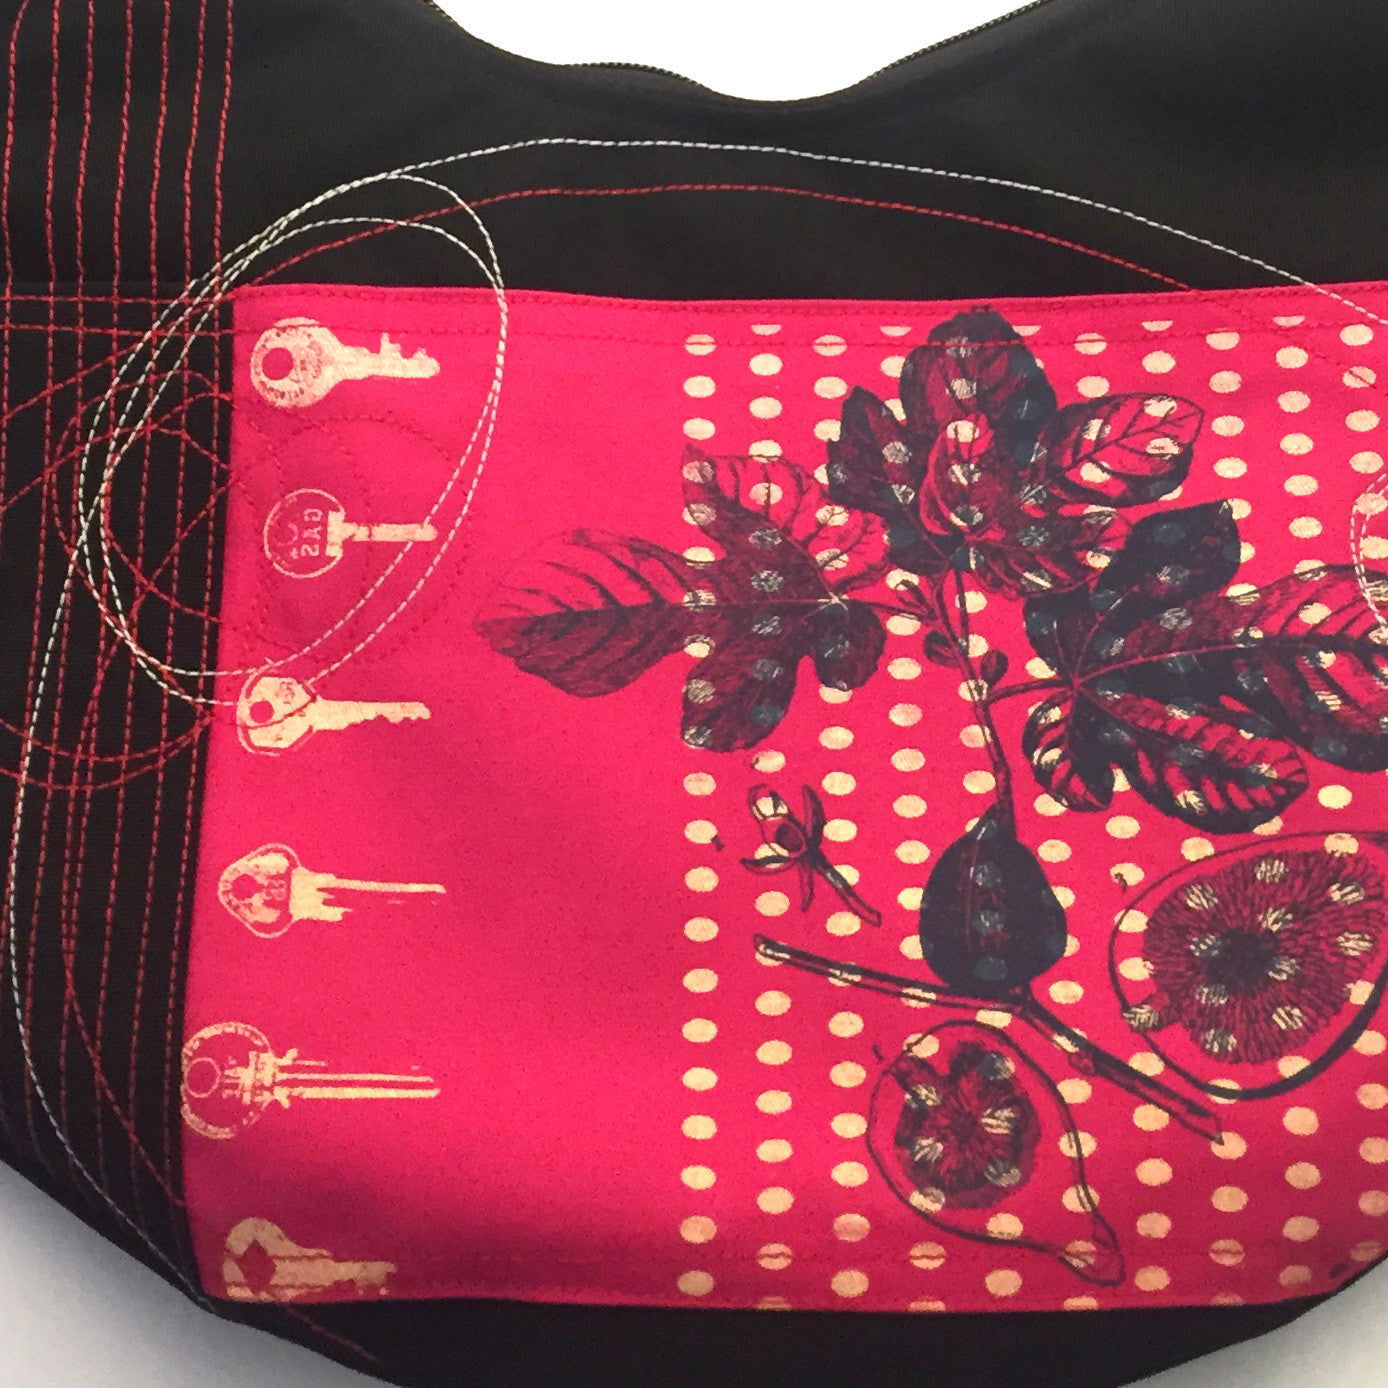 Waterproof one of a kind Cynthia DM Bag in Black and red. Handmade in Quebec